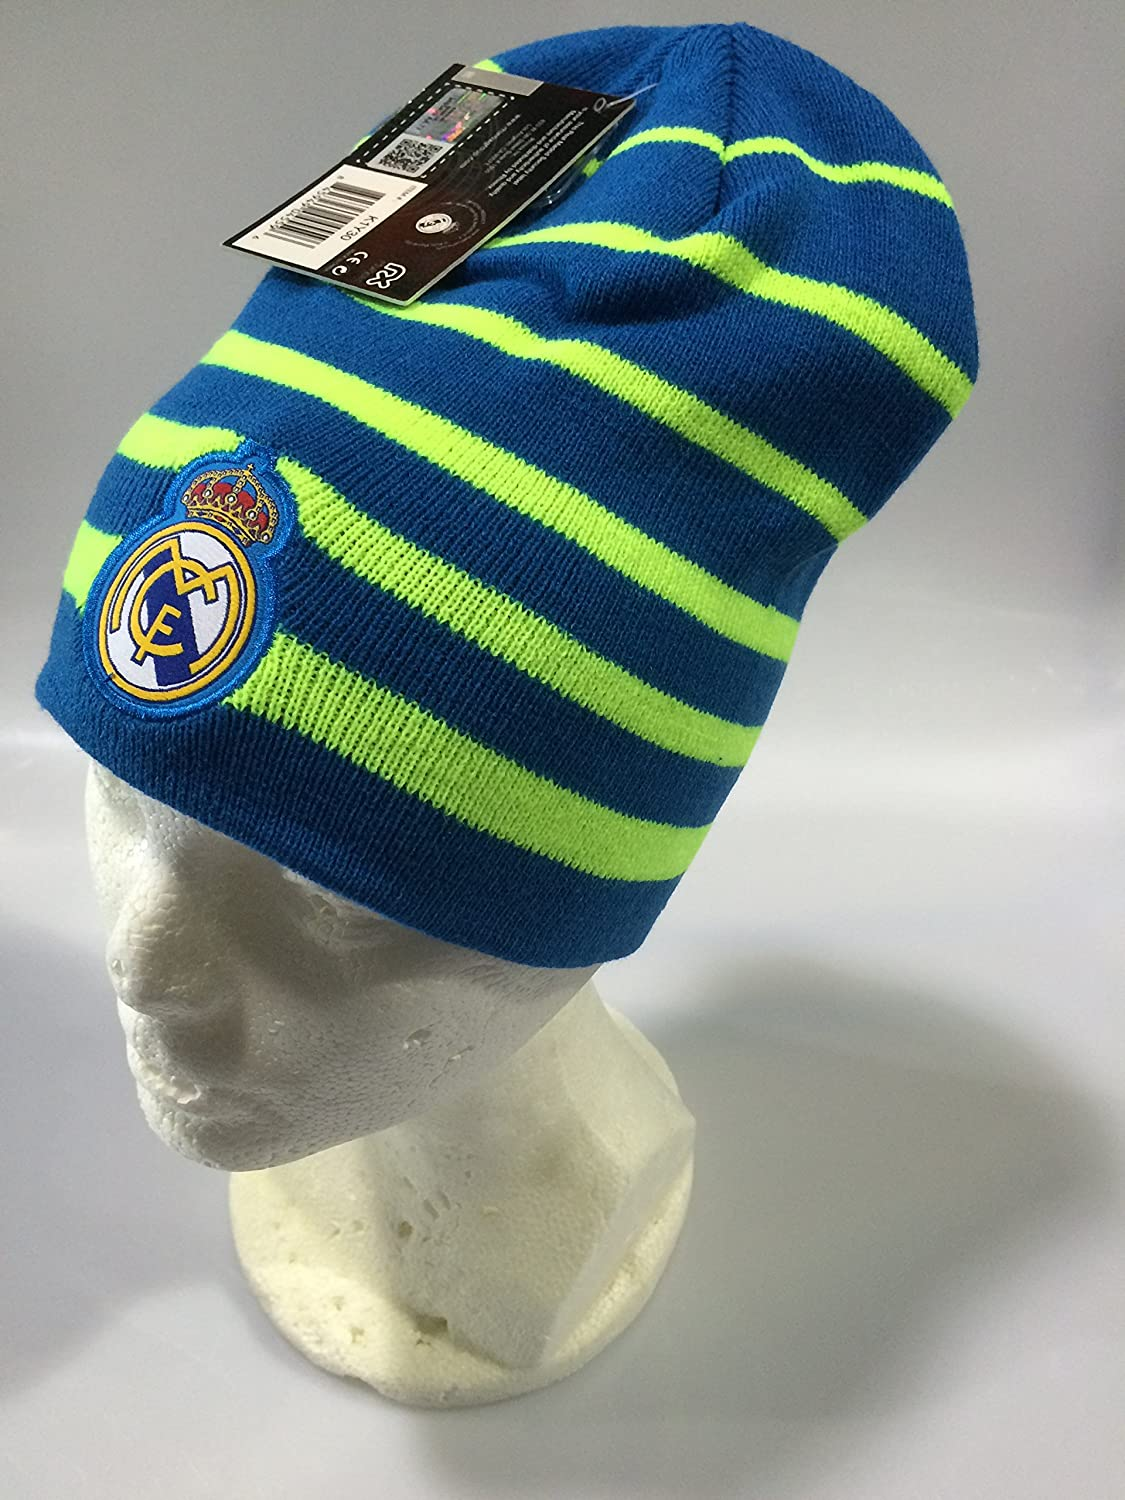 Amazon.com : Real Madrid FC Blue/Neon Winter Beanie (OSFM) : Sports & Outdoors